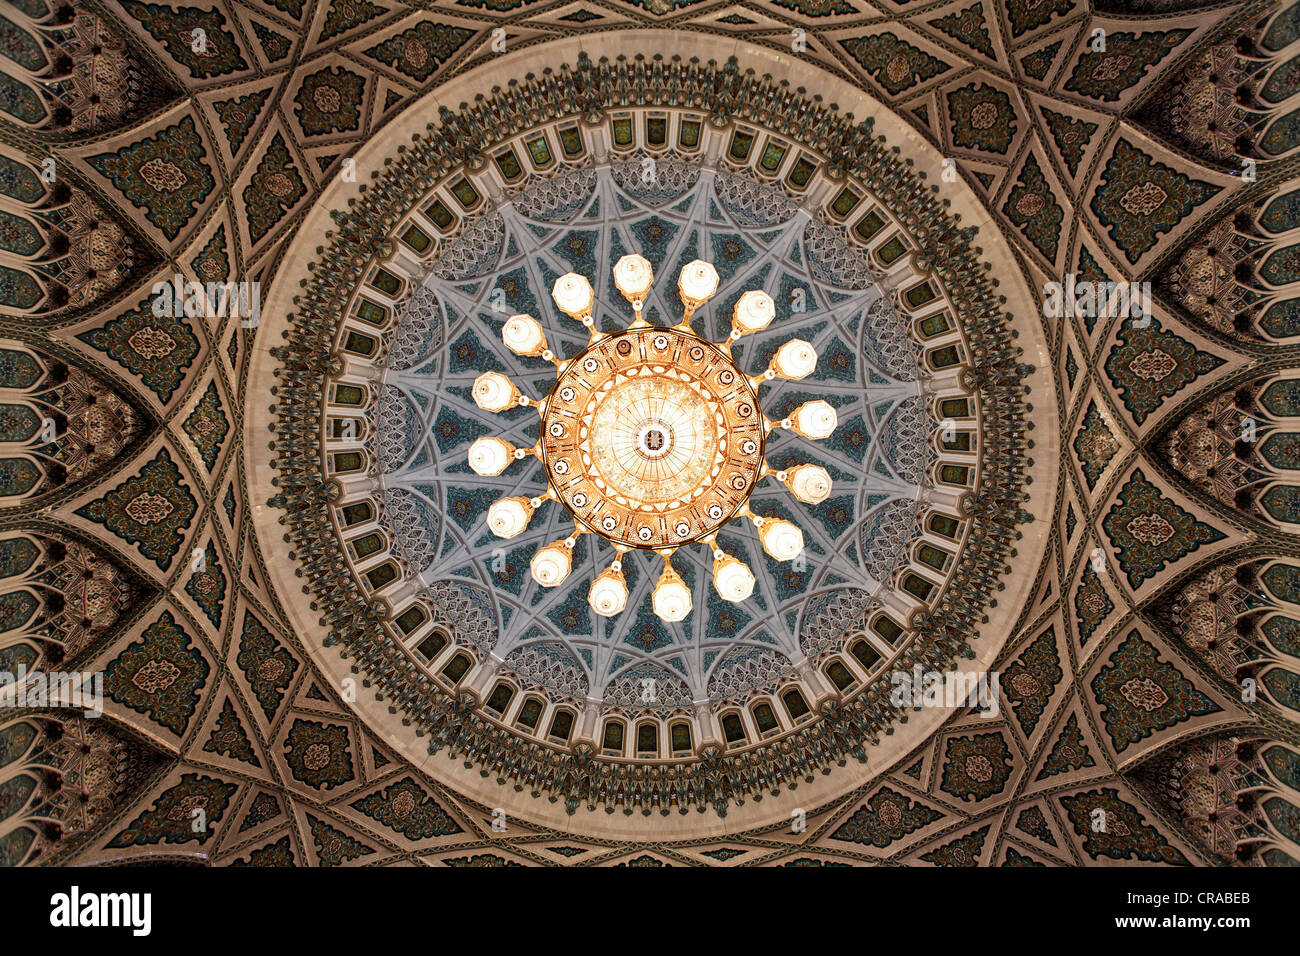 Swarowski chandelier, weight eight tons, width eight meters, height 15 meters, dome, ornaments, prayer hall men - Stock Image